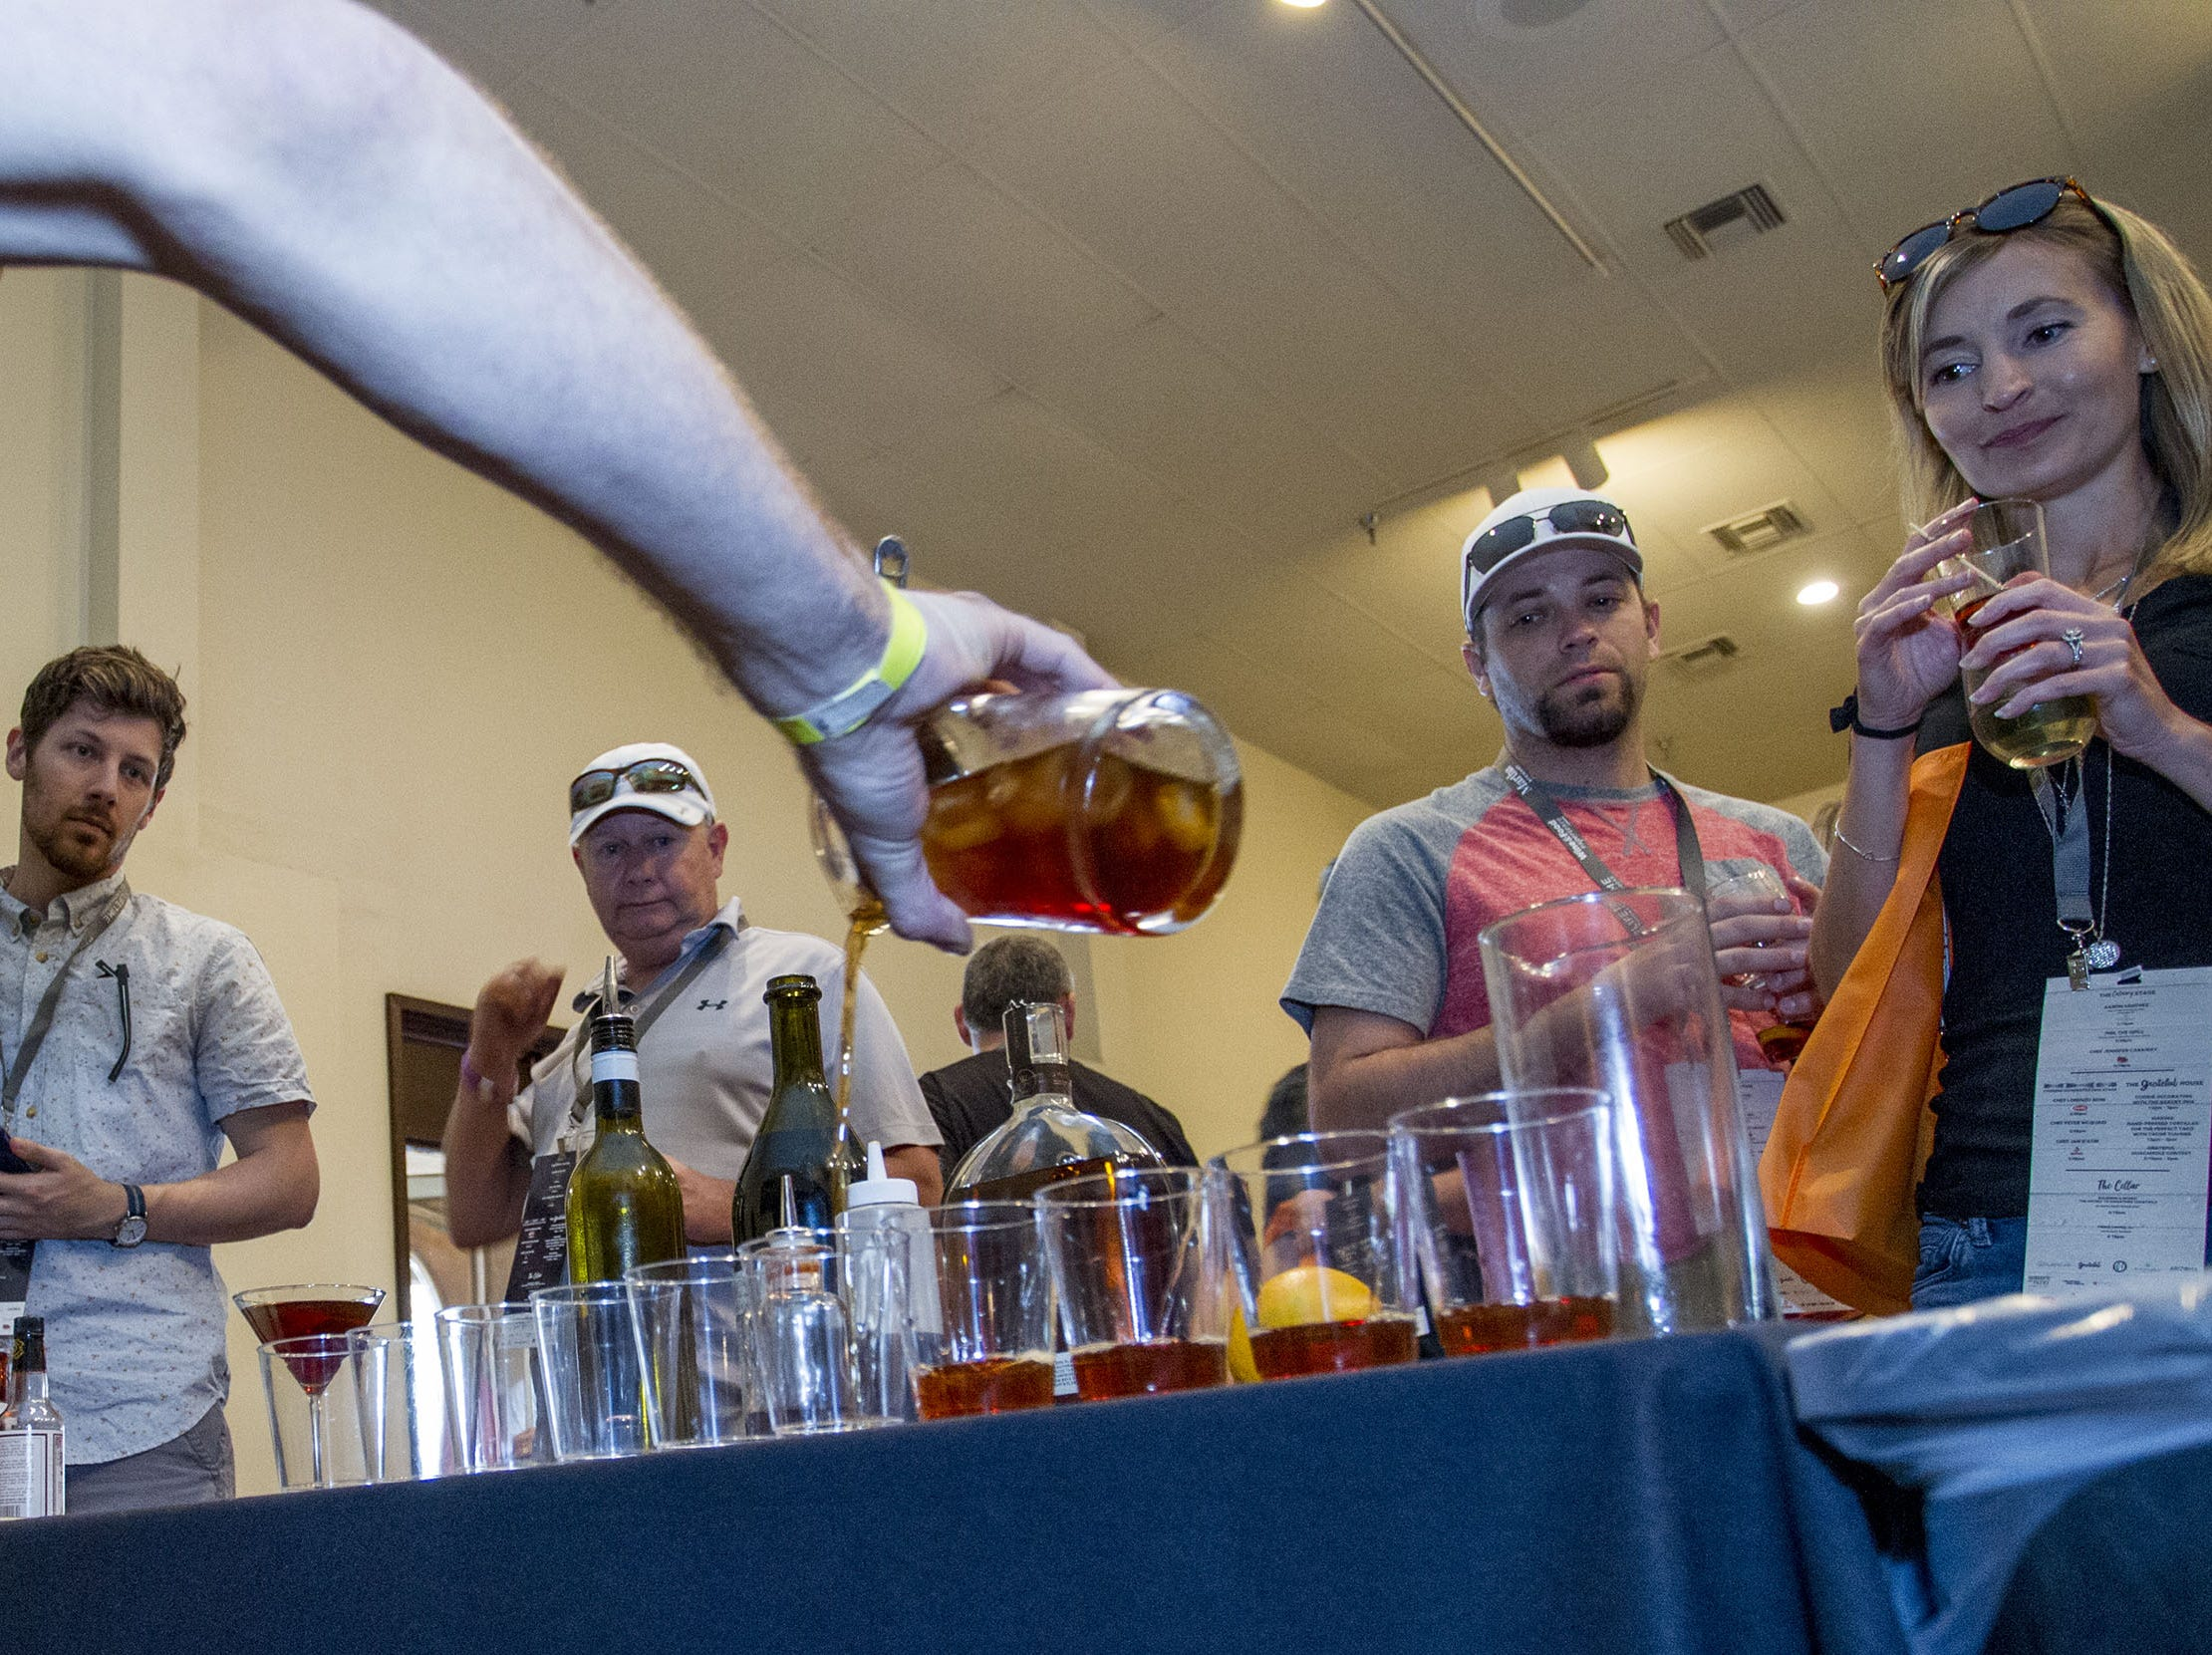 Mixologist Richie Moe makes a Bourbon & Bones Manhattan as guests wait for their sample during the azcentral Wine & Food Experience at WestWorld of Scottsdale, Sunday, Nov. 4, 2018.